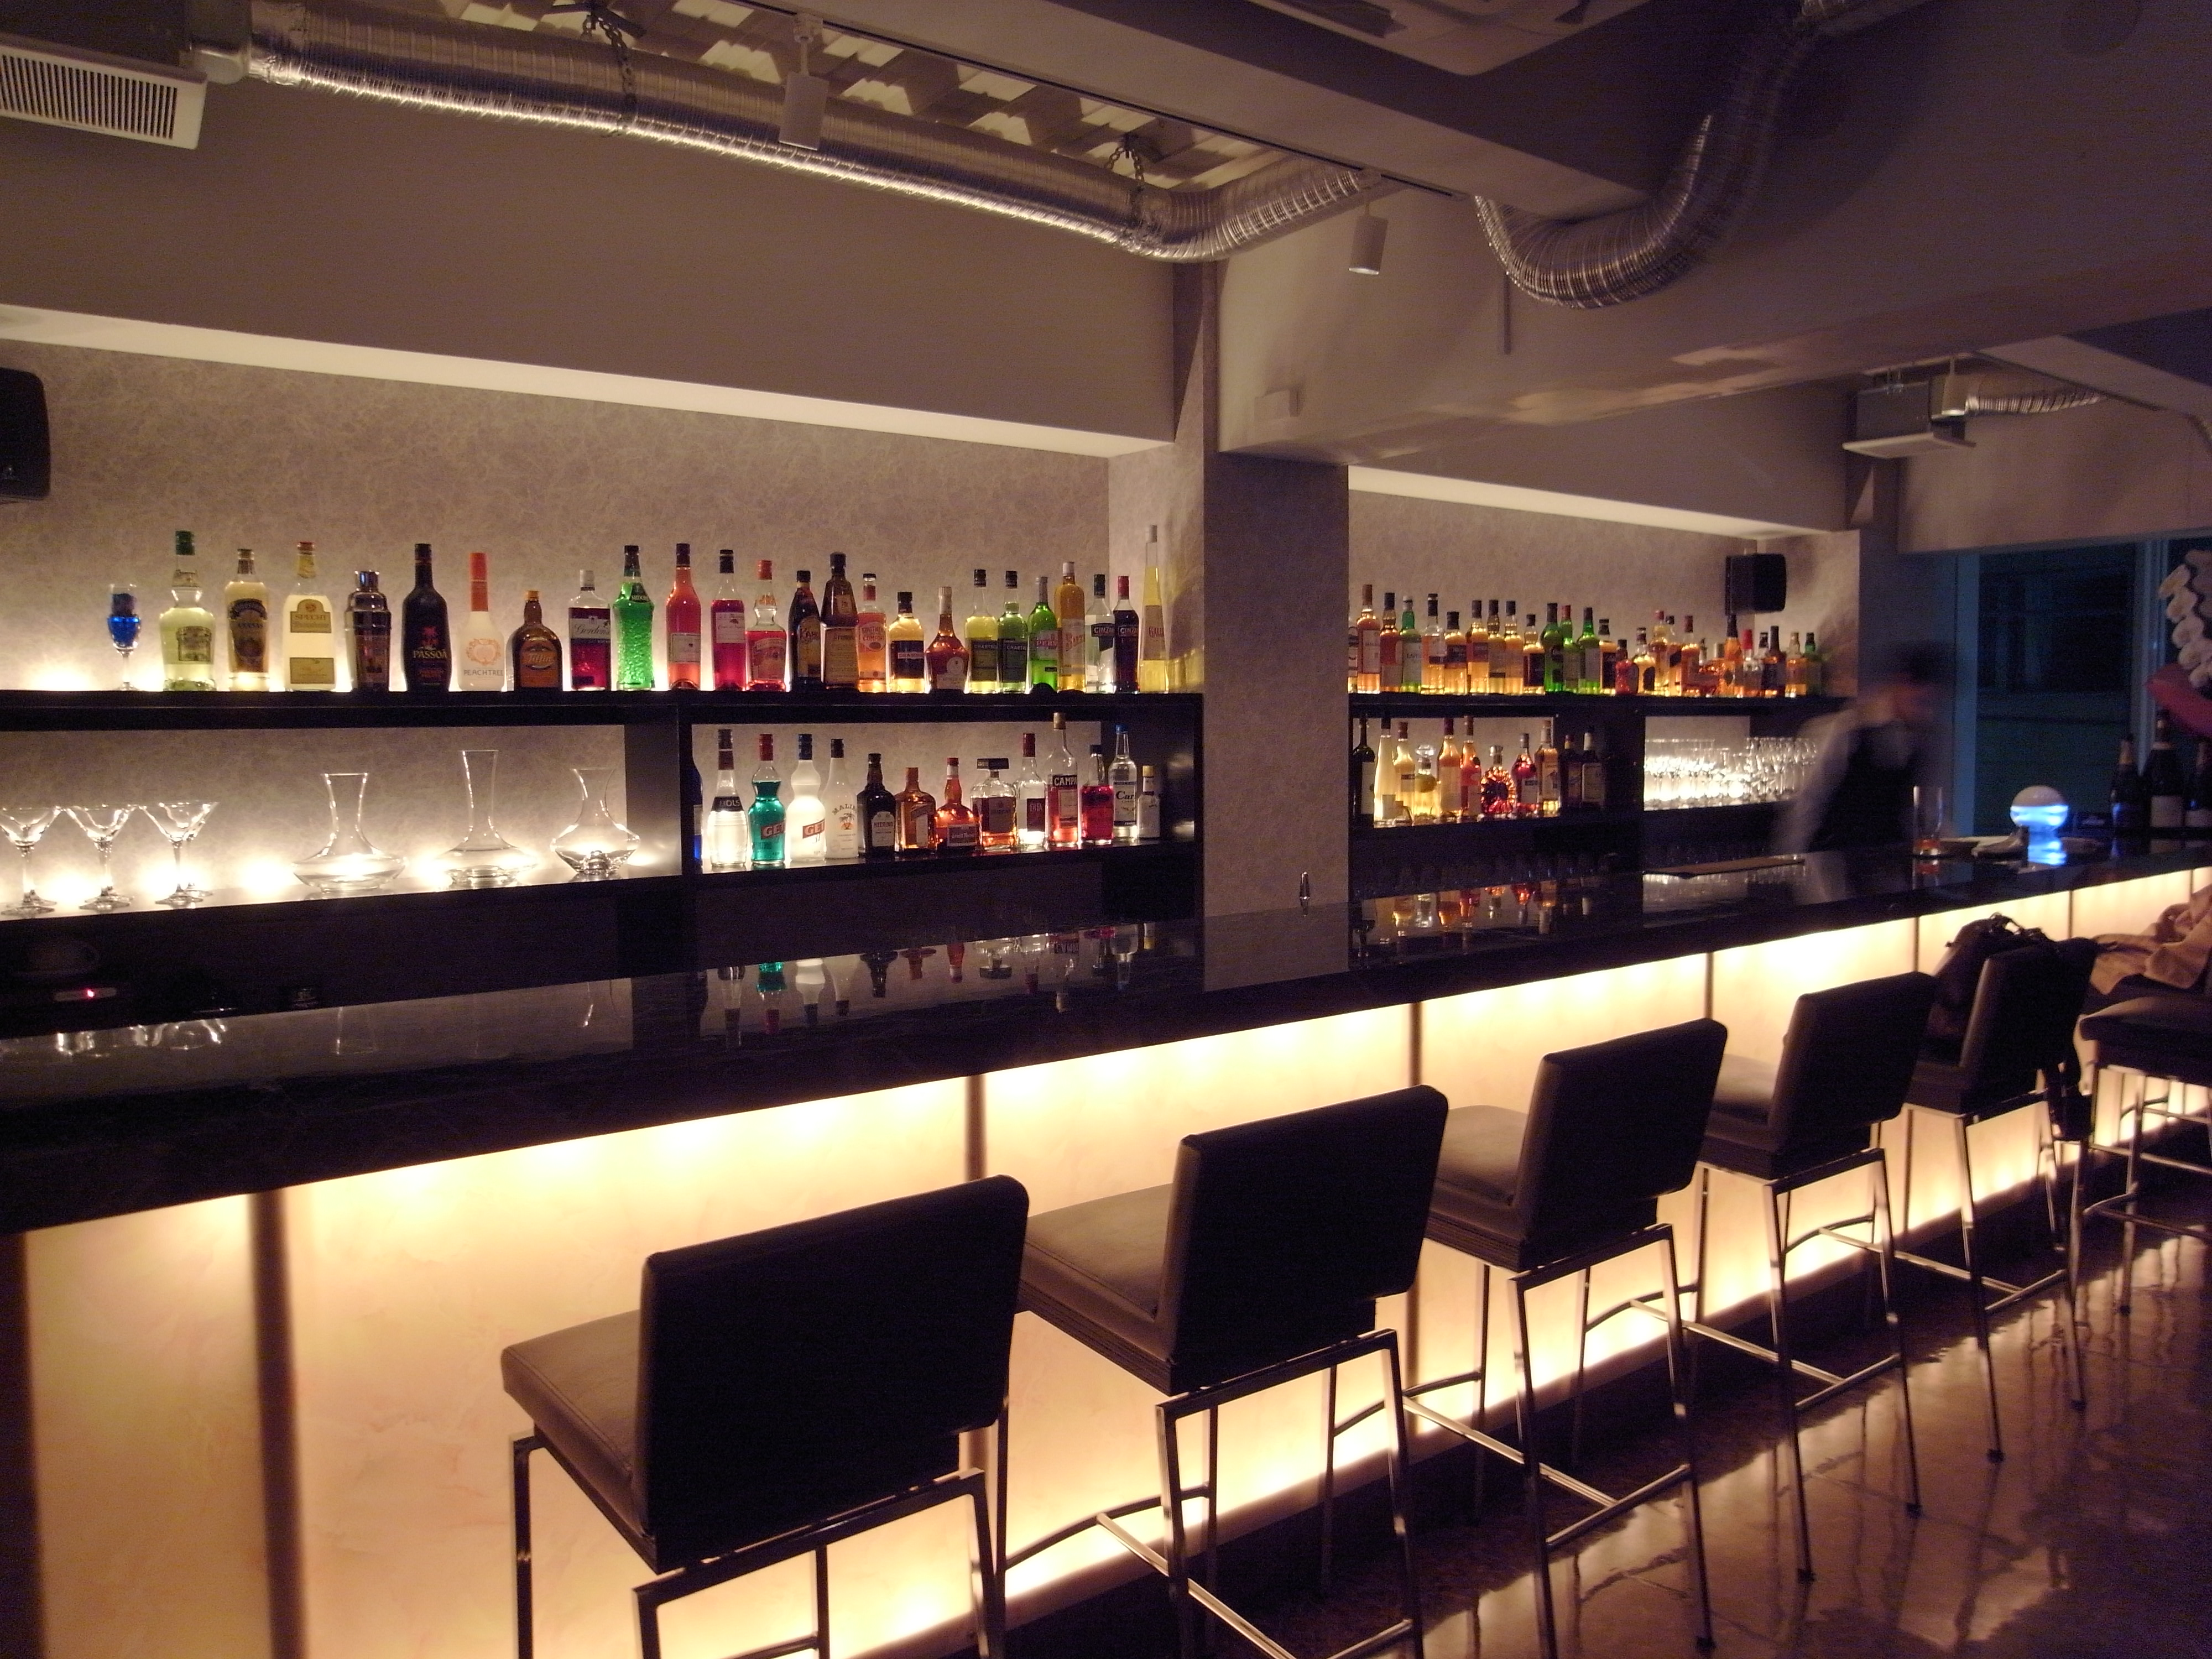 Great Bar Designs For Home. Top 28 Bar Counter At Home Design 12 Cool Designs Cafe